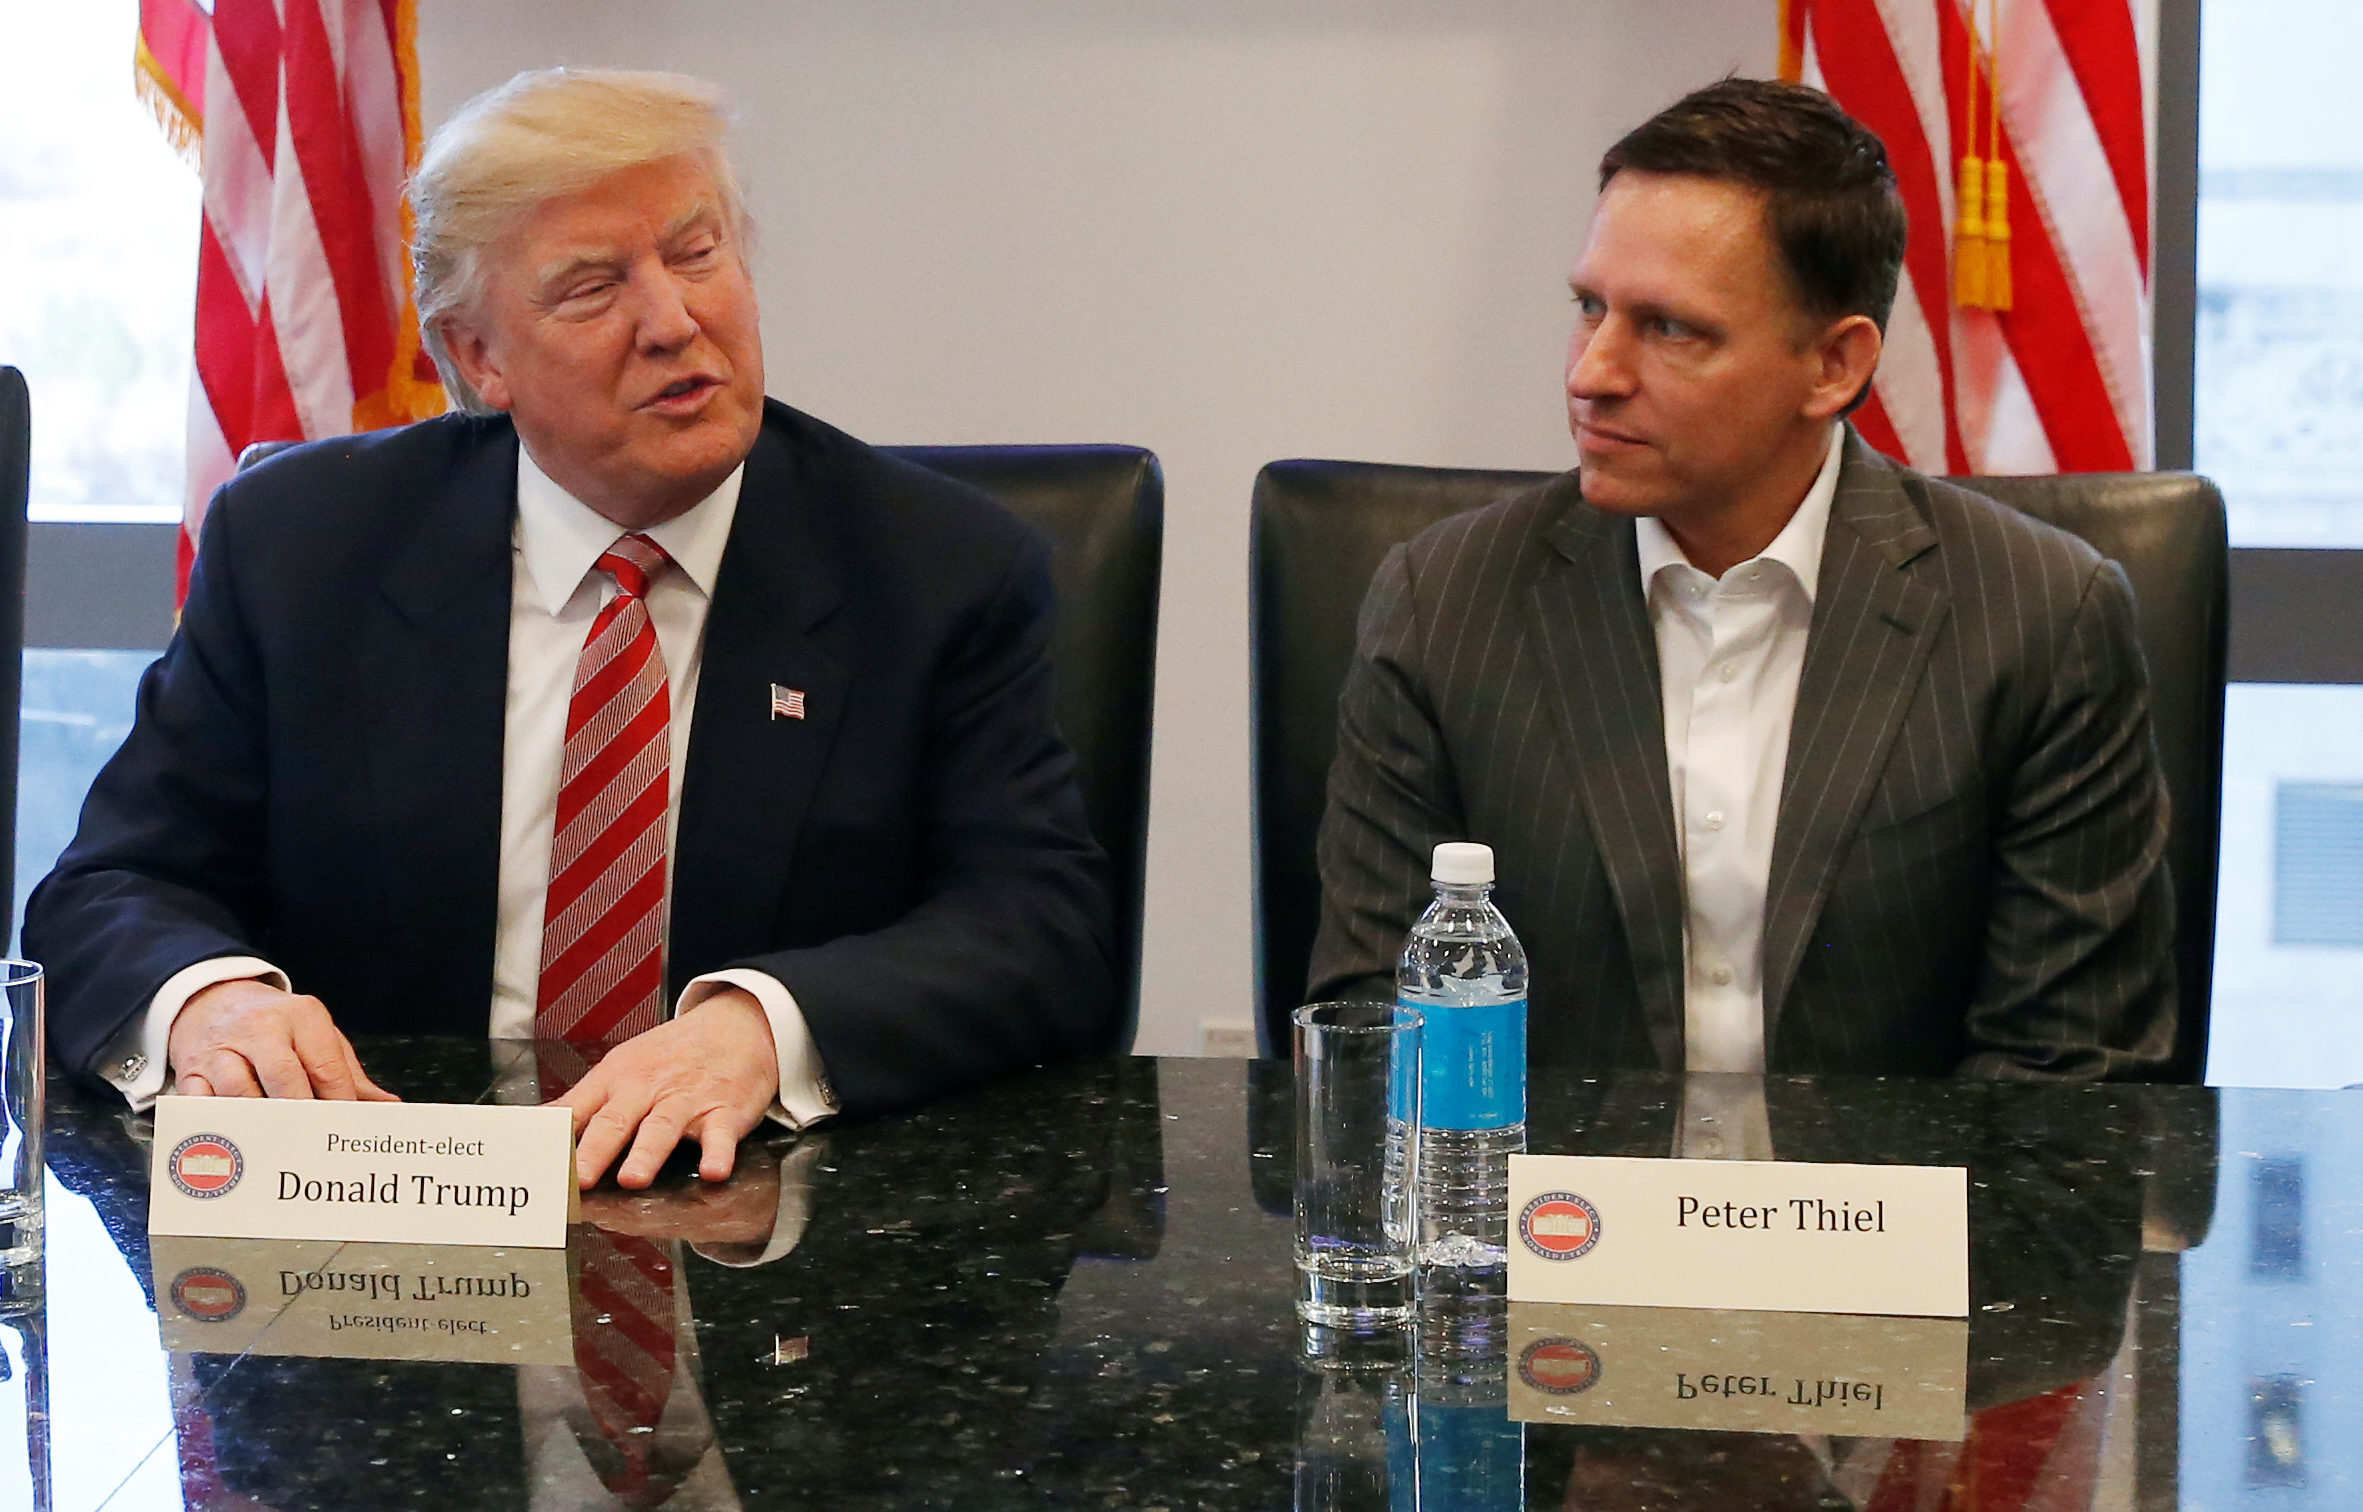 Peter Thiel Blasts 'Treasonous' Google For Choosing China Over US Military | The Daily Caller